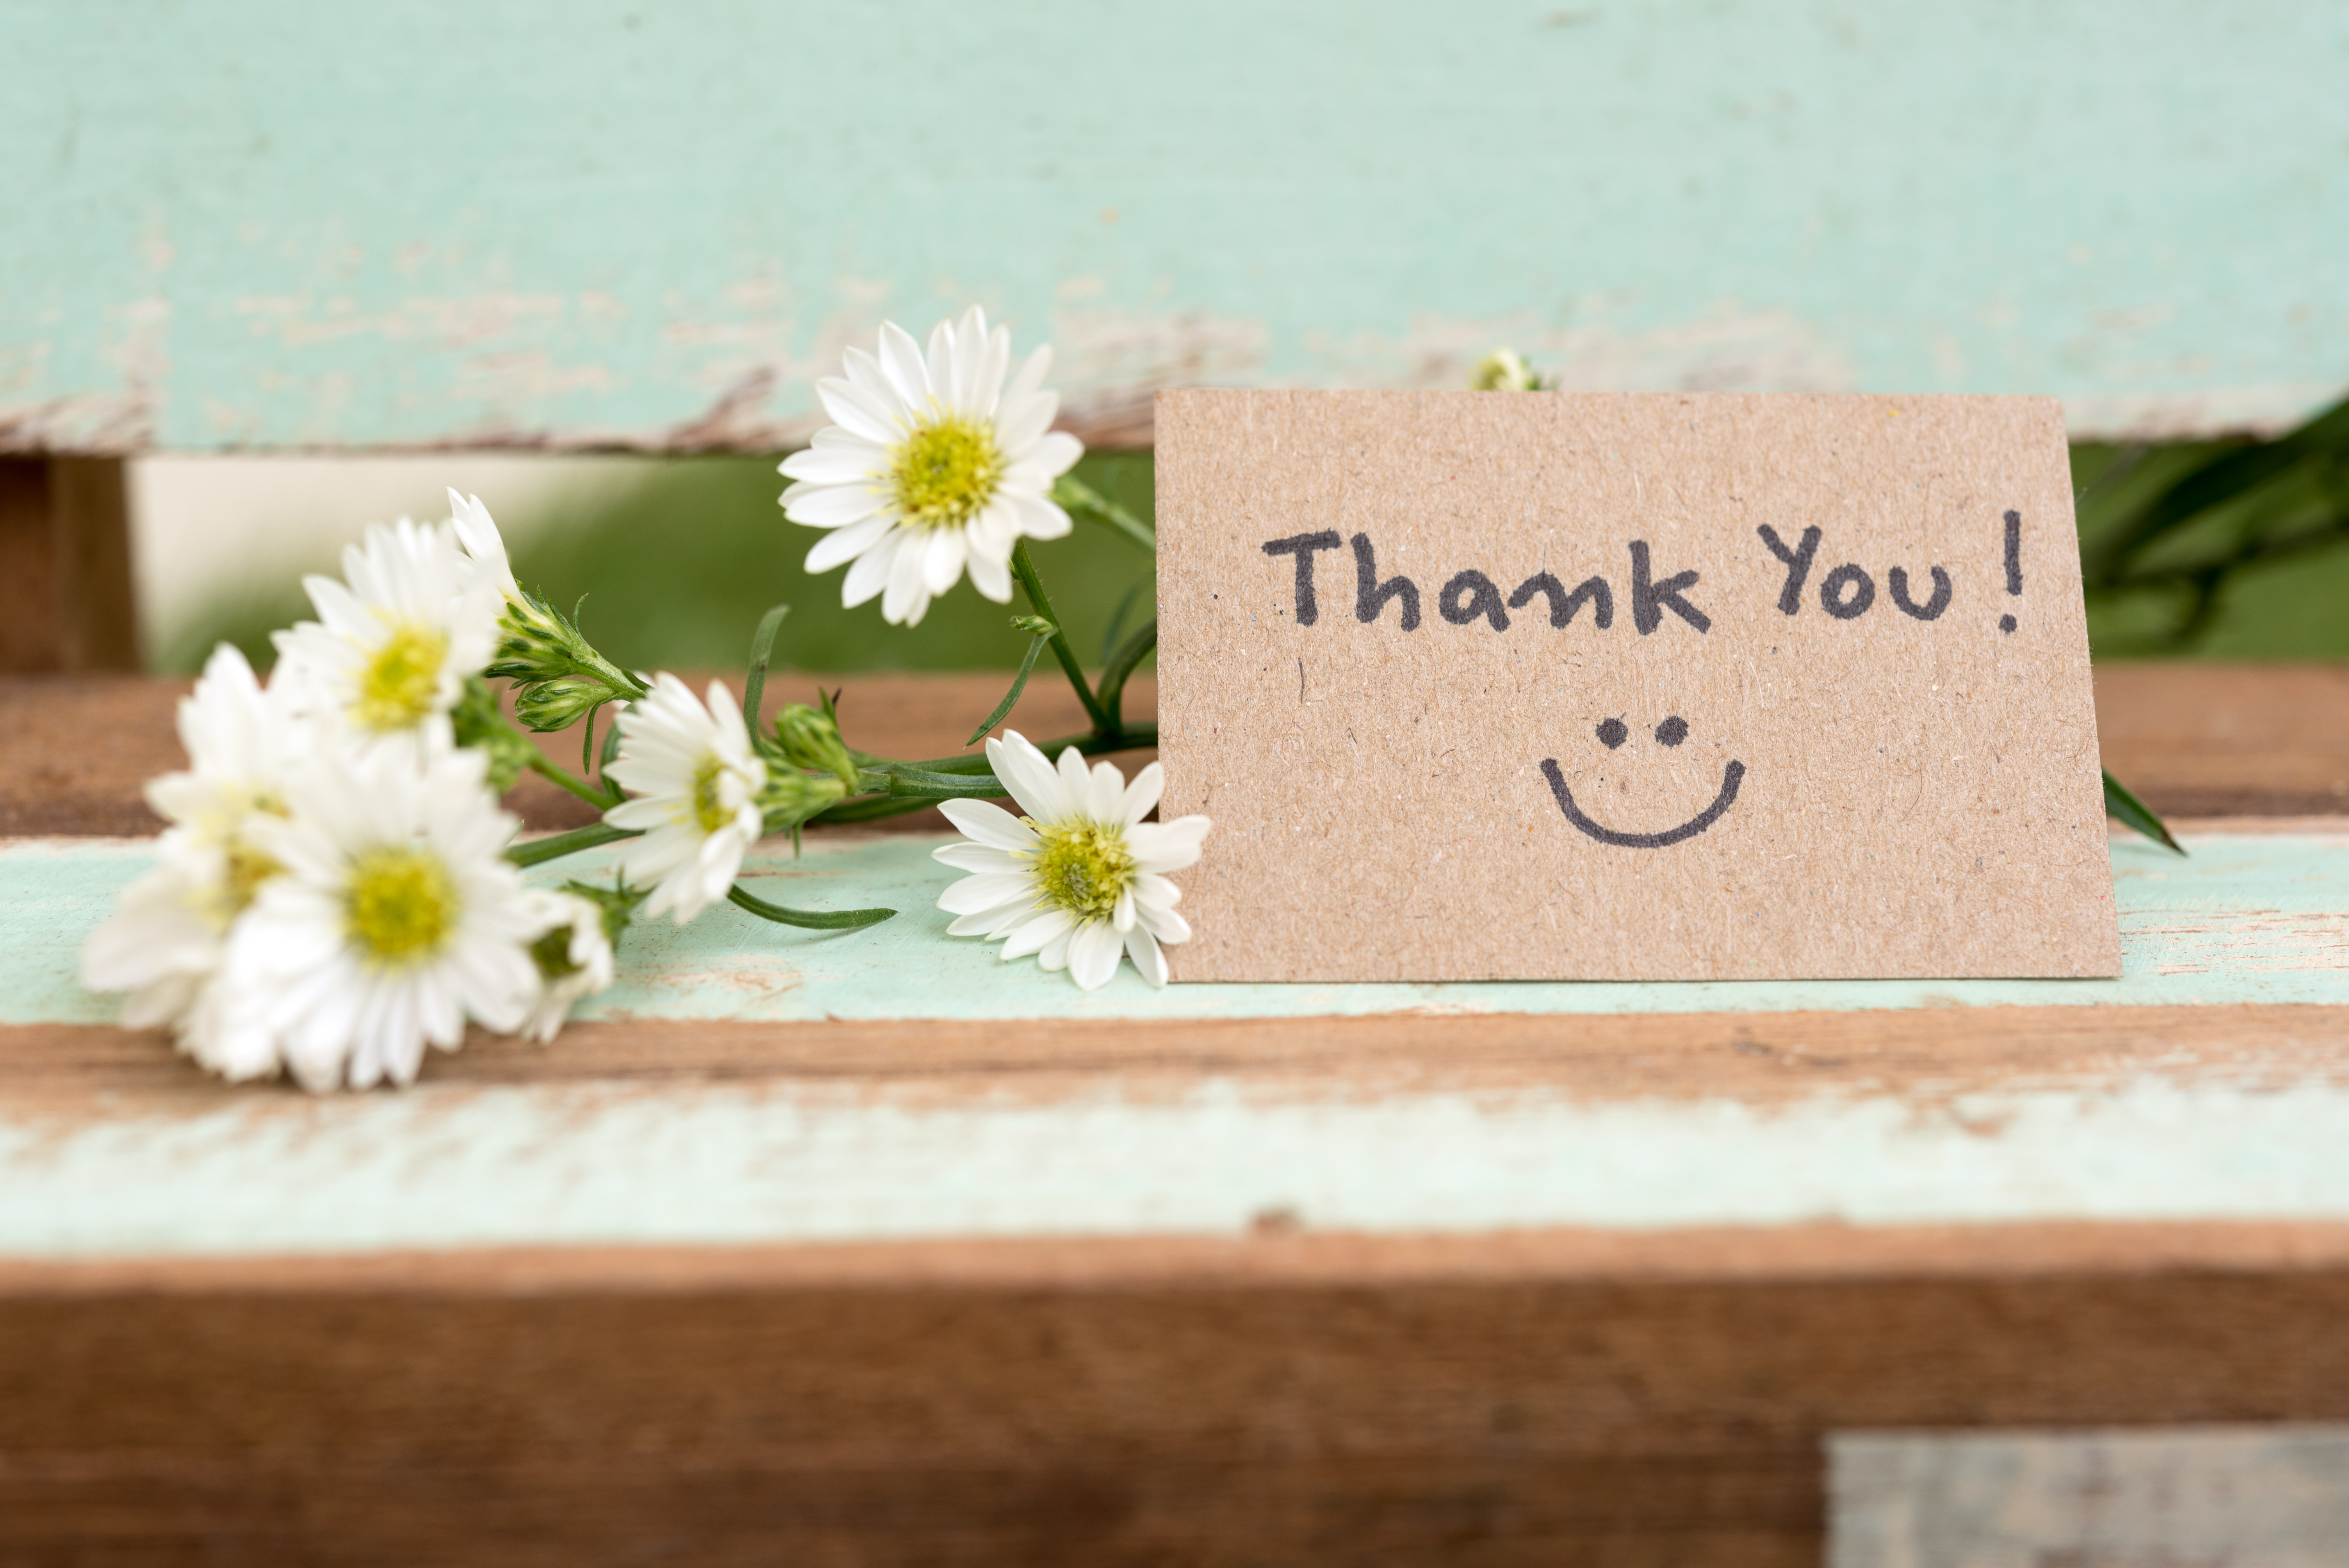 thank-you-note-with-smile-face-flower-cluster